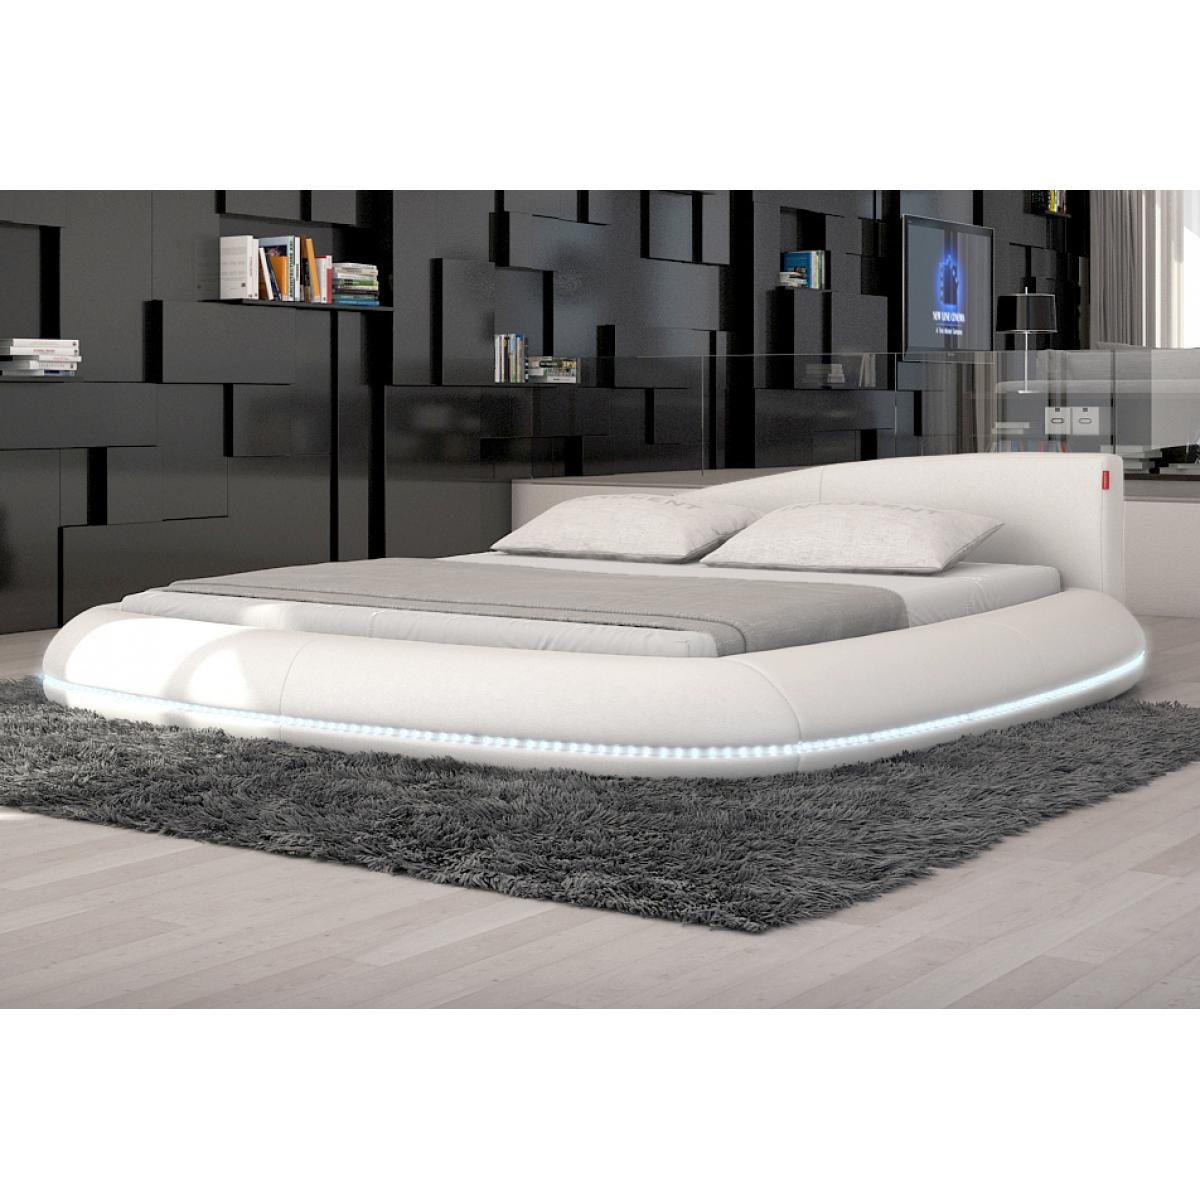 kunstleder led bett designerbett 140x200 cm ehebett doppelbett polsterbett wei ebay. Black Bedroom Furniture Sets. Home Design Ideas